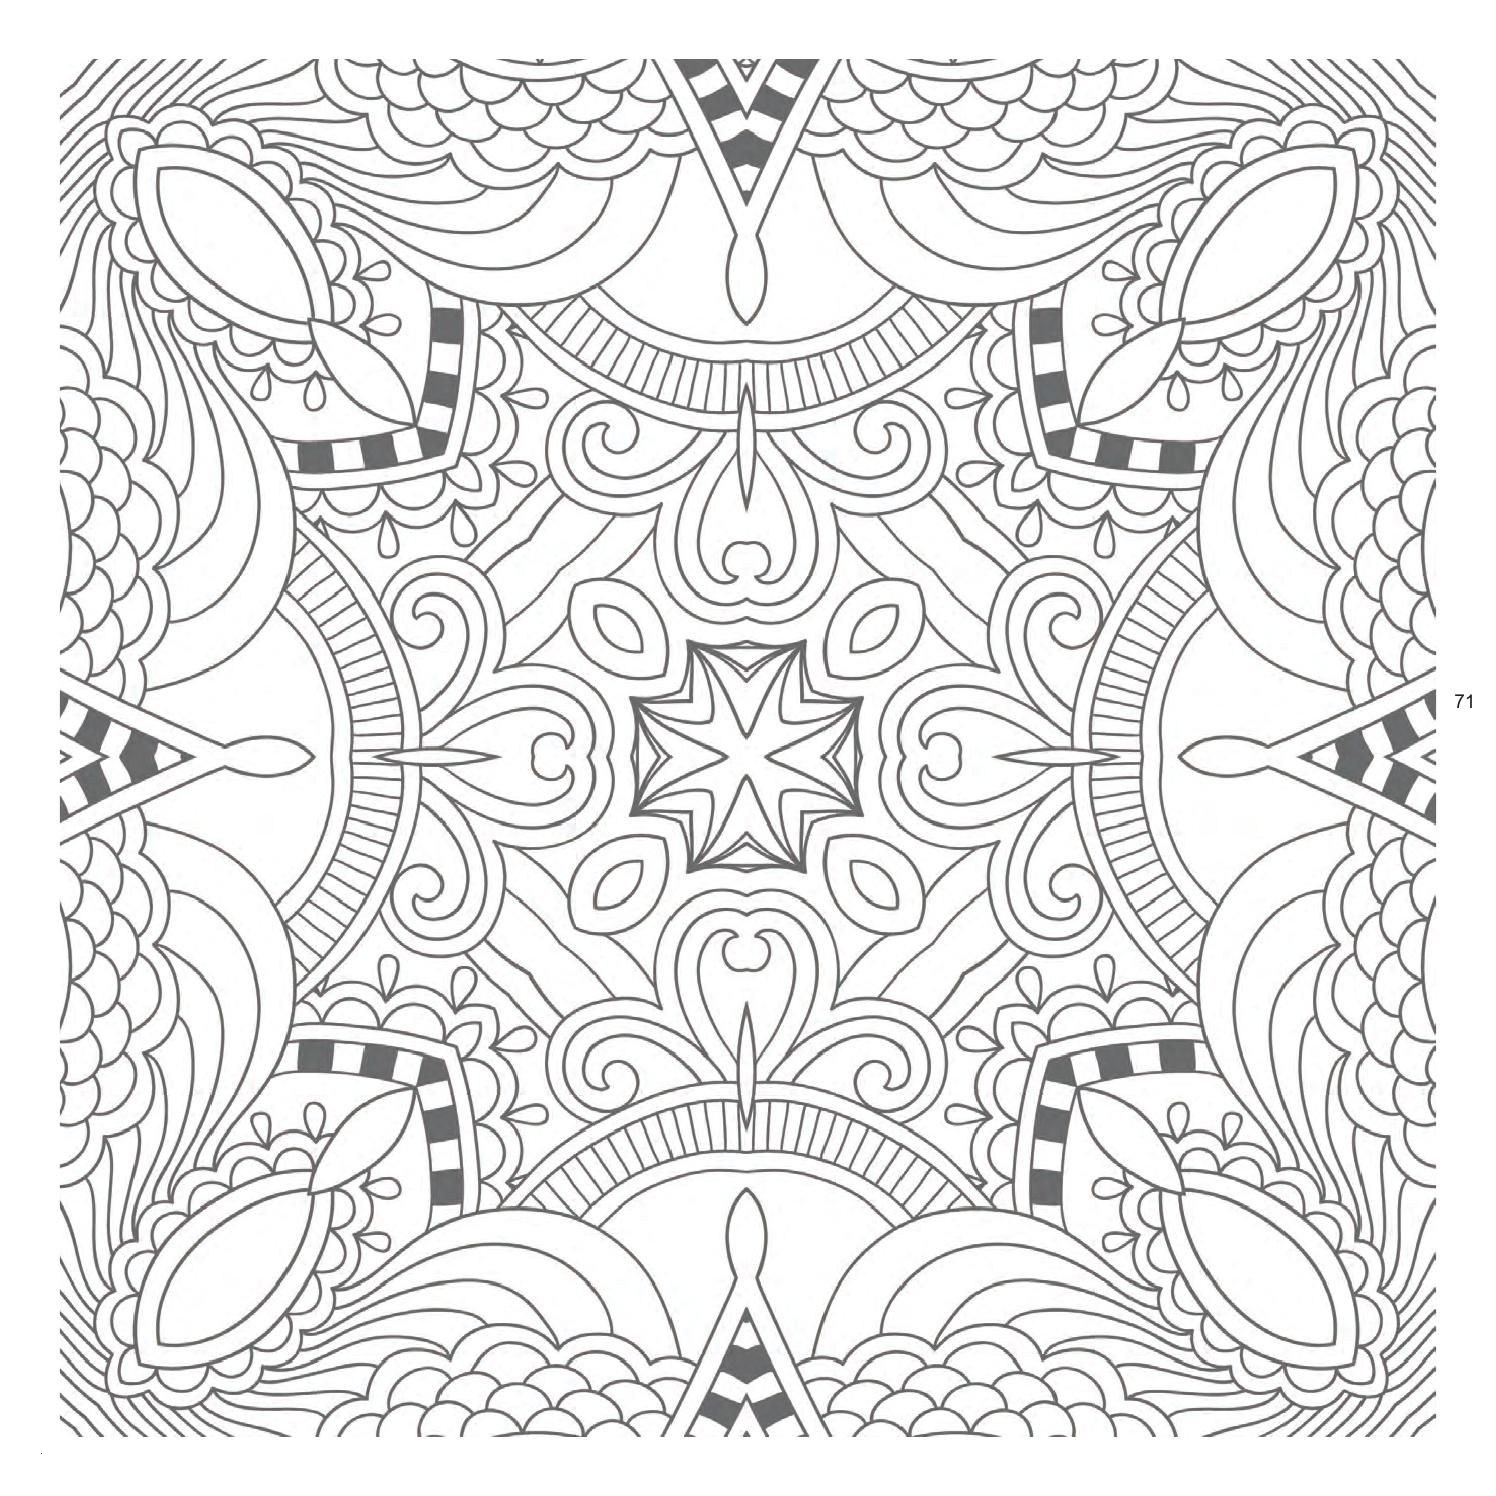 24 therapeutic Coloring Pages for Kids Collection - Coloring Sheets